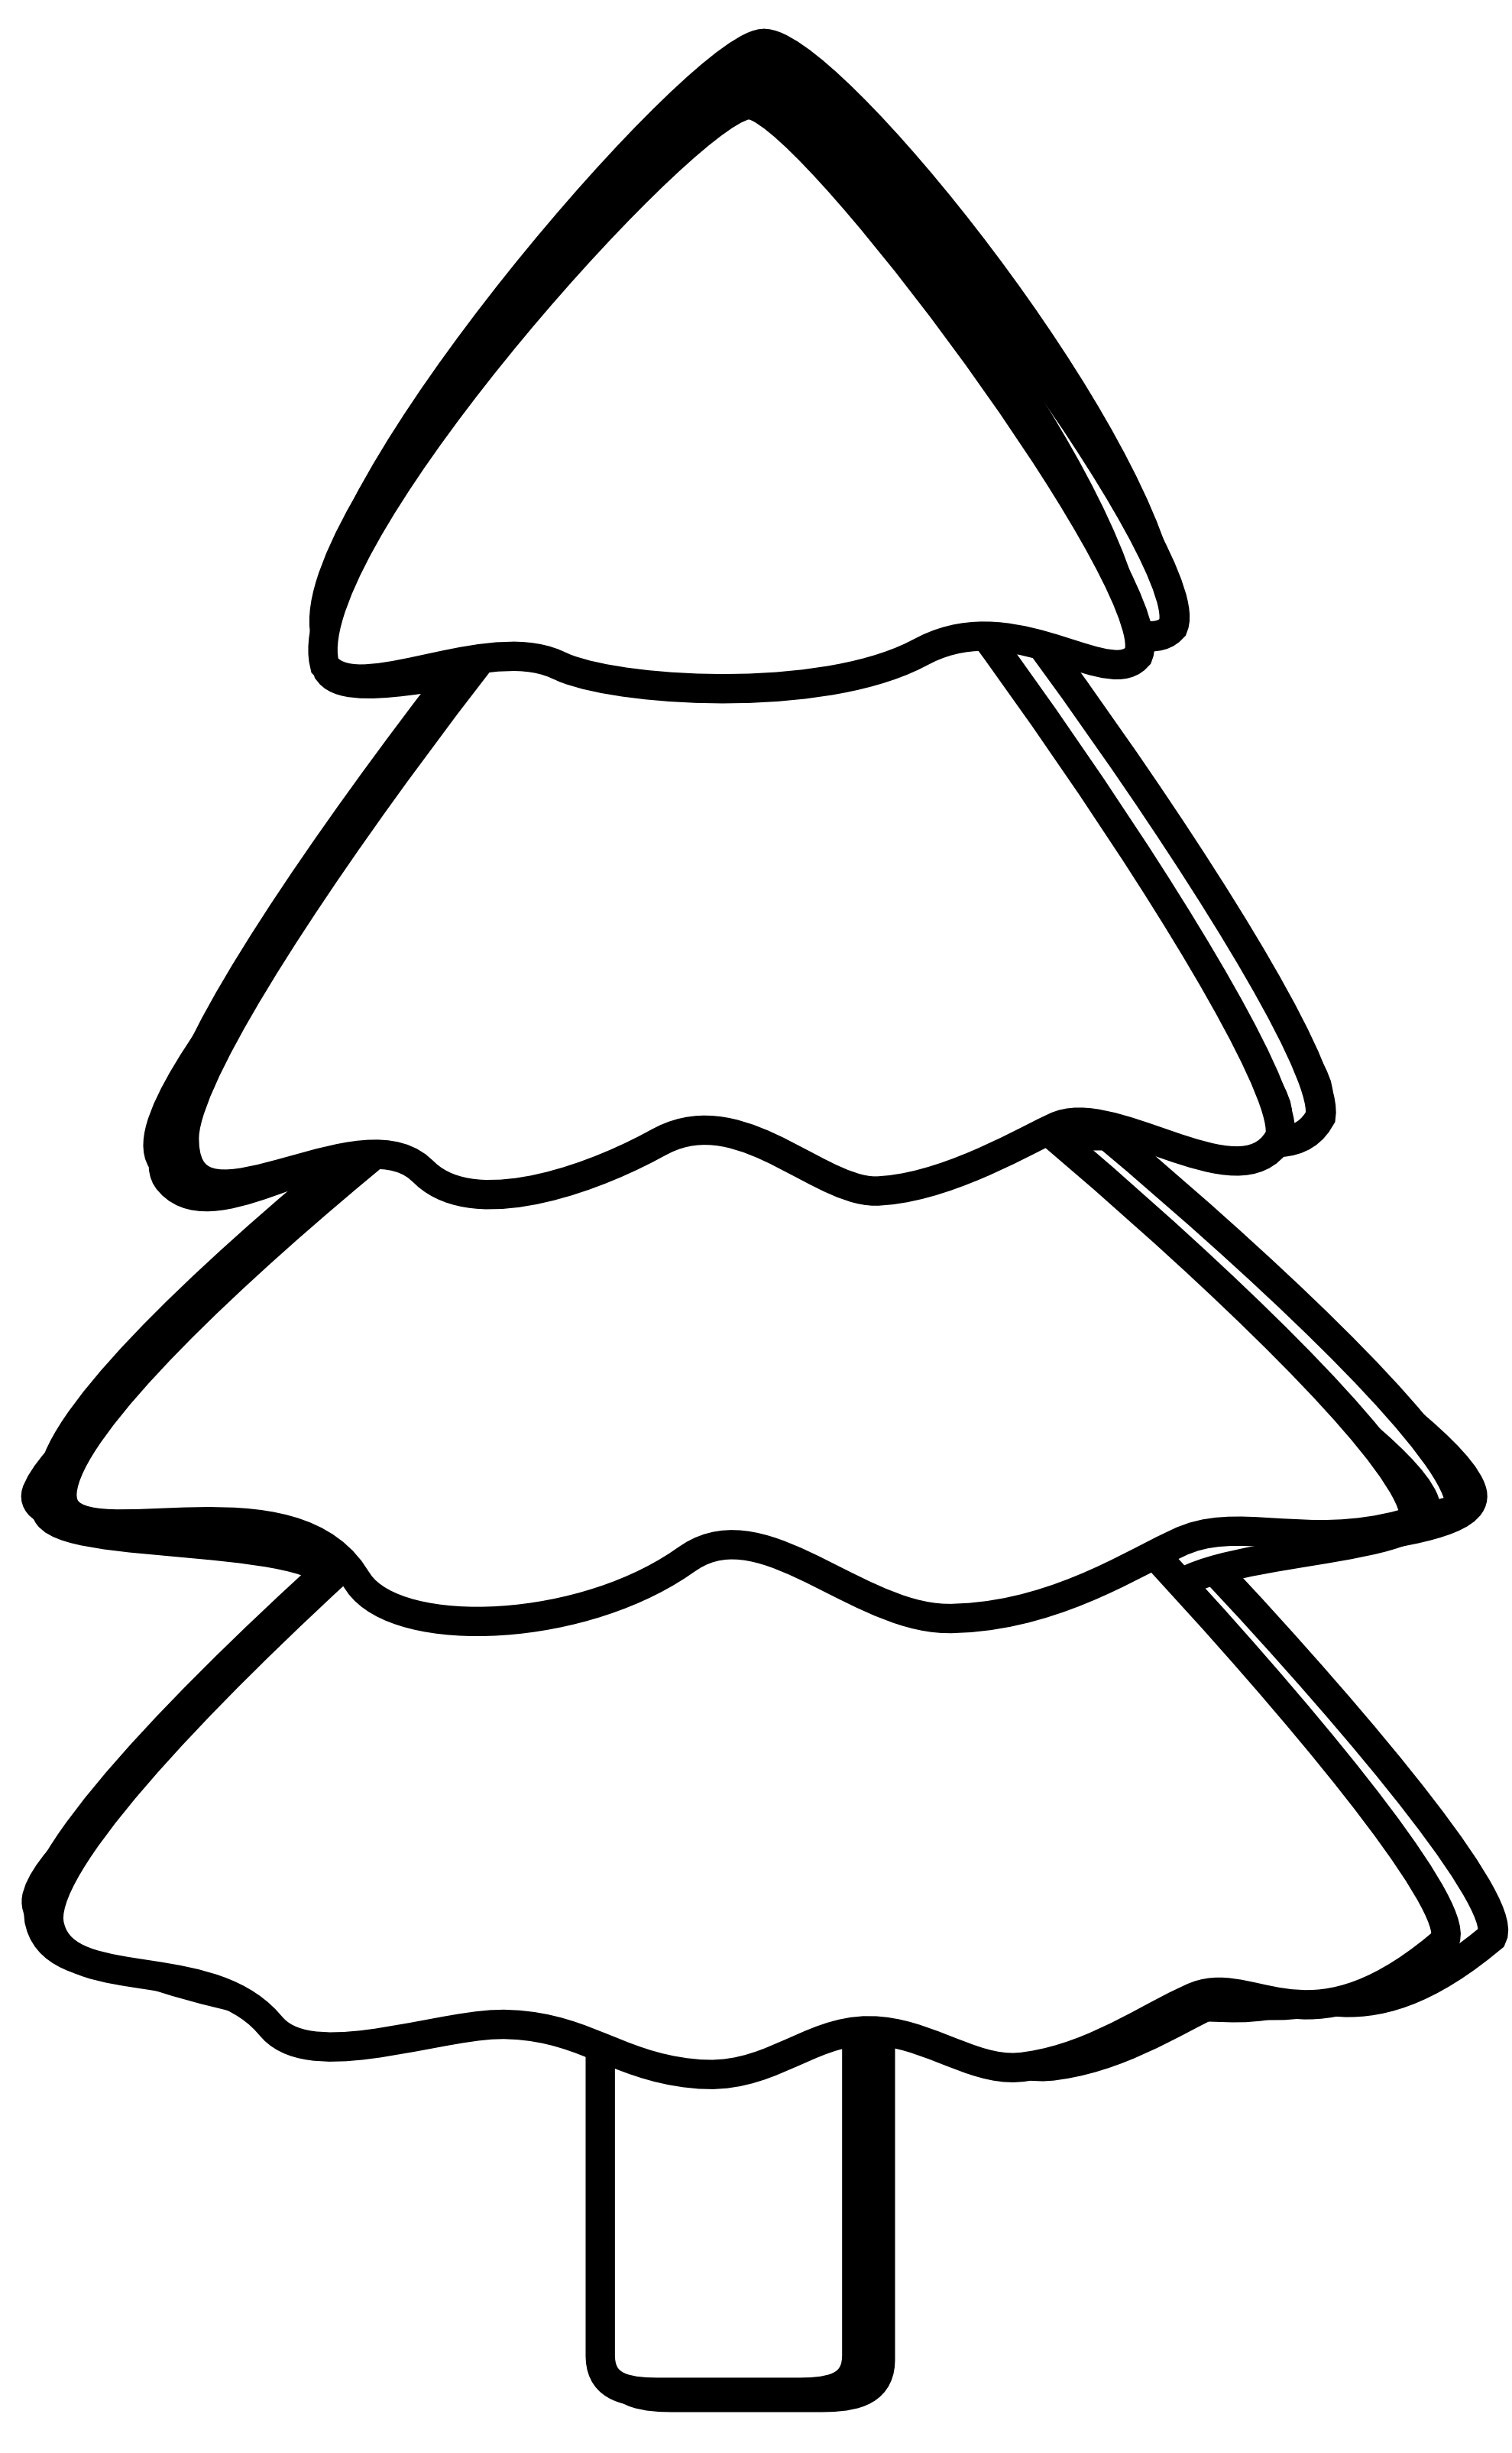 Free Black And White Tree Images Download Free Clip Art